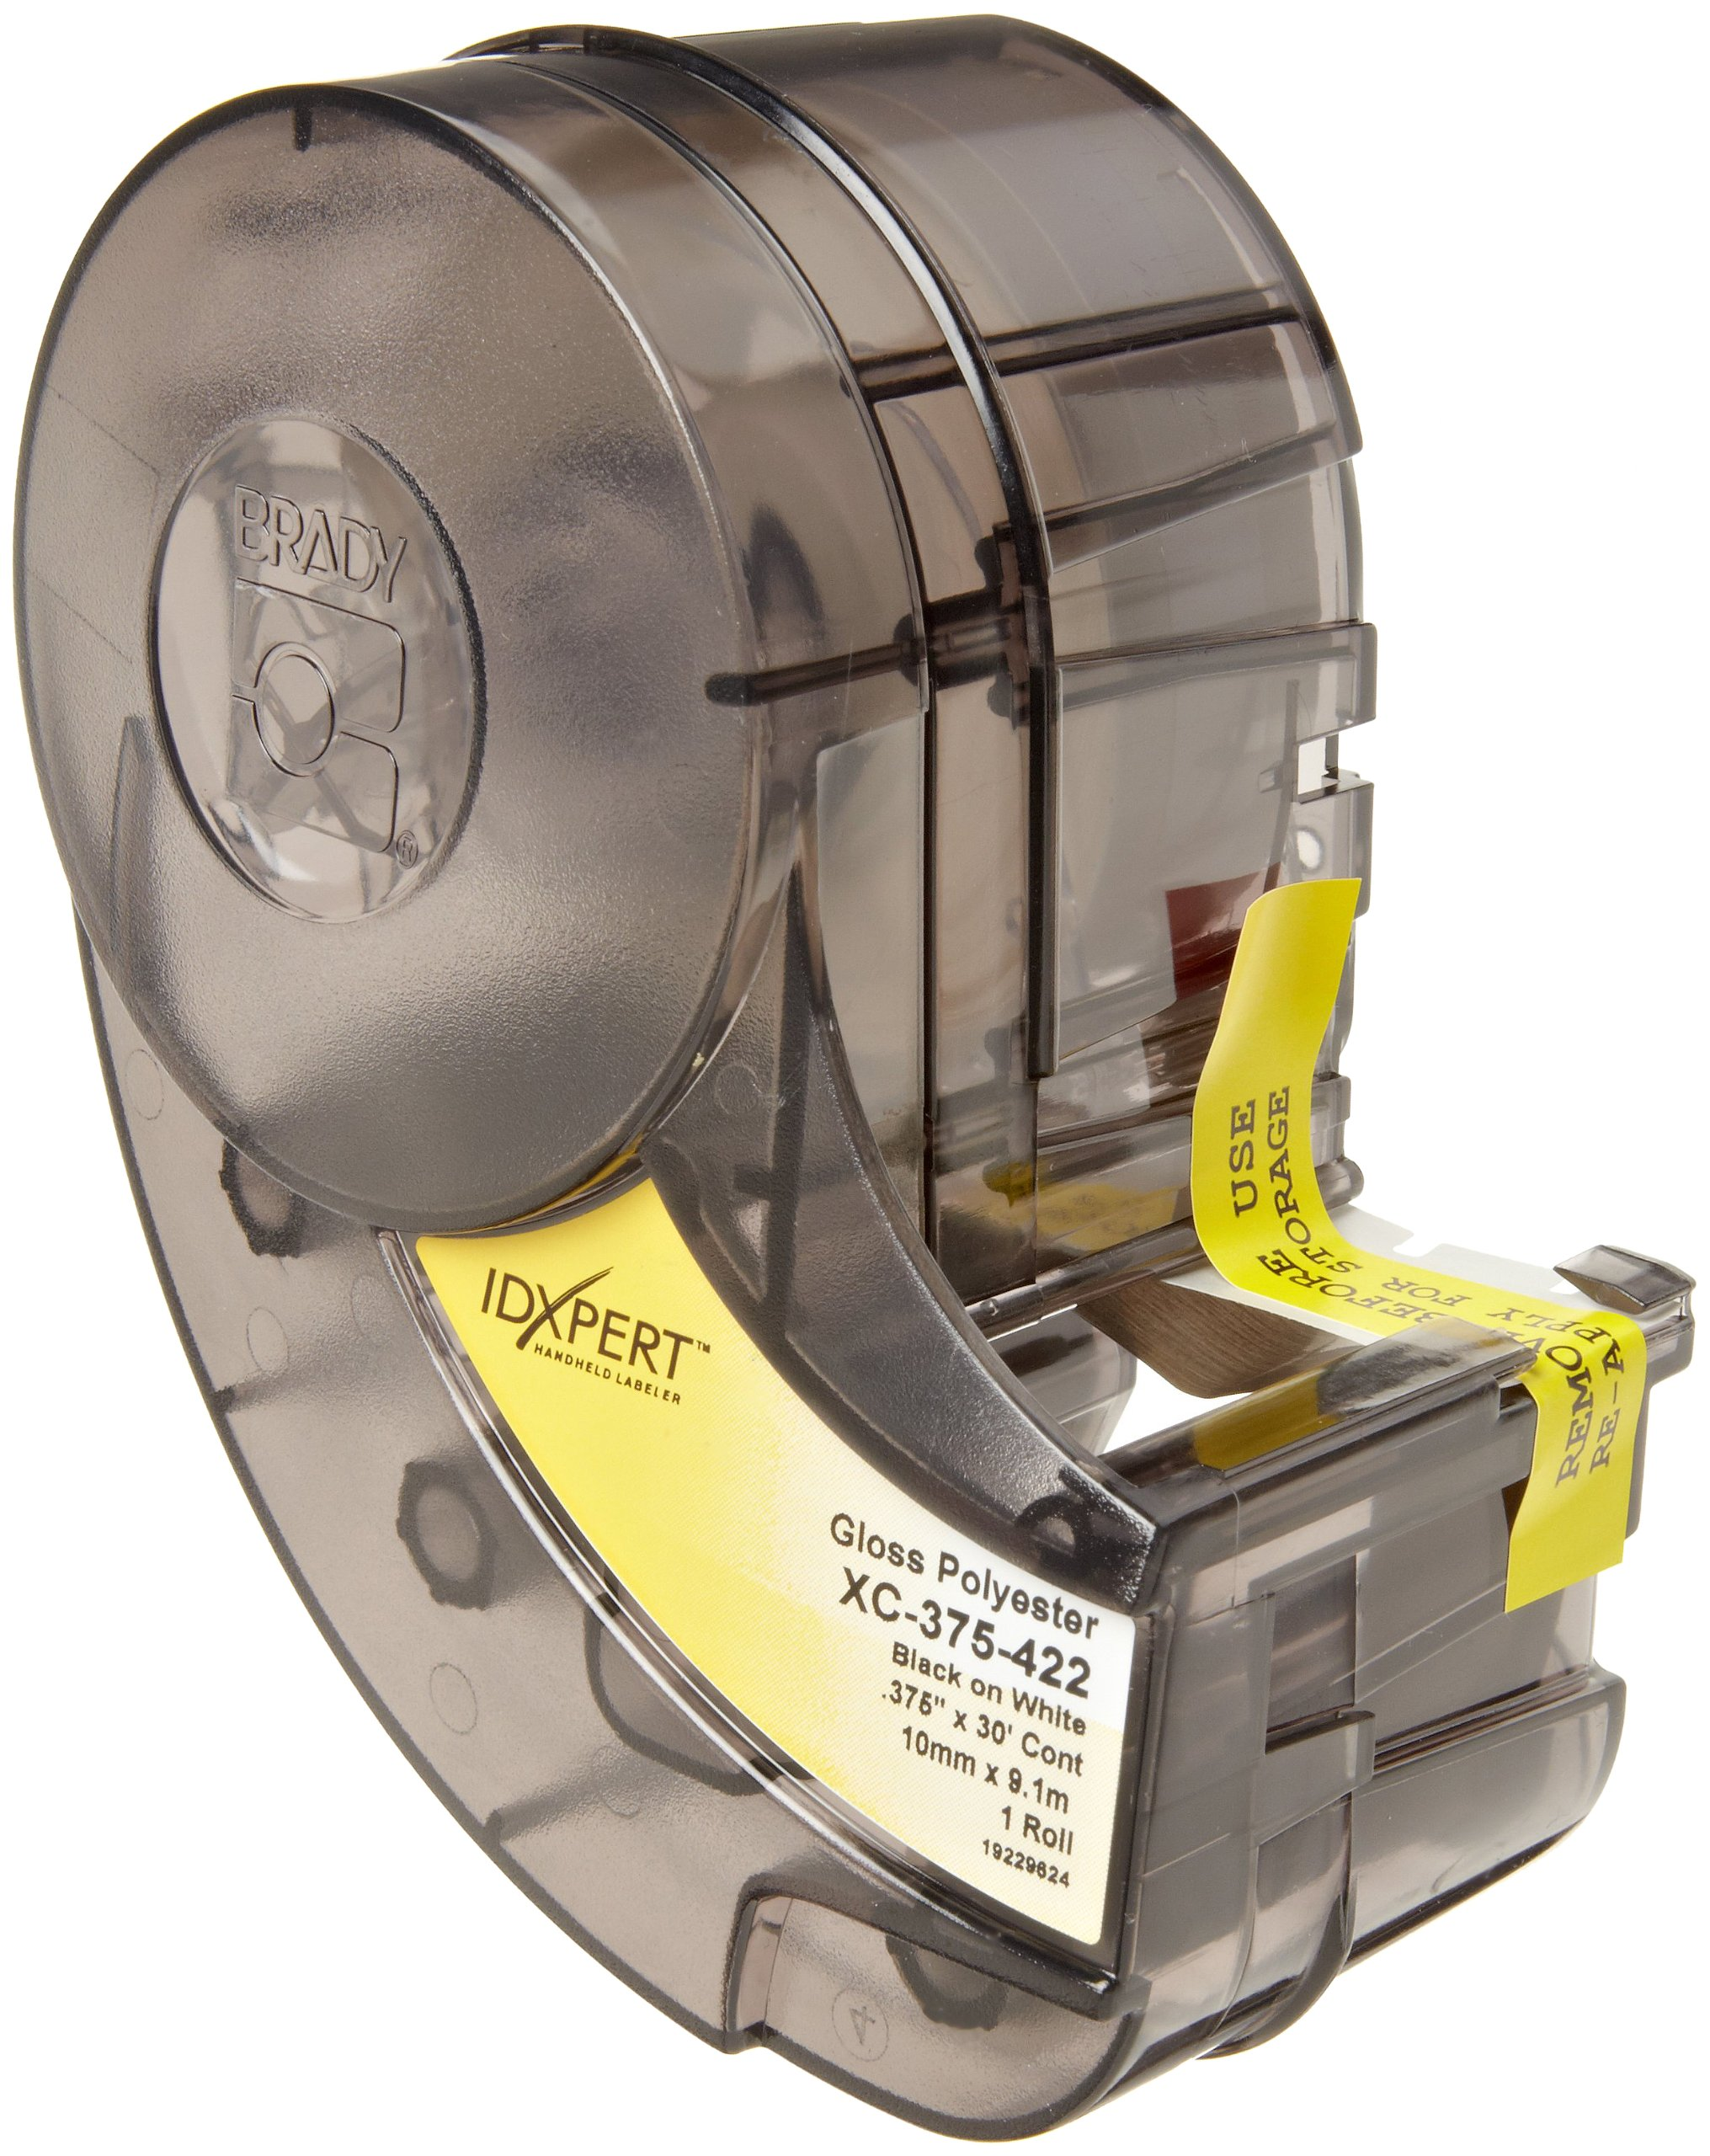 Brady XC-375-422 IDXPERT 0.375'' Height, 19'' Width, B-422 Permanent Polyester, Black On White Color Label